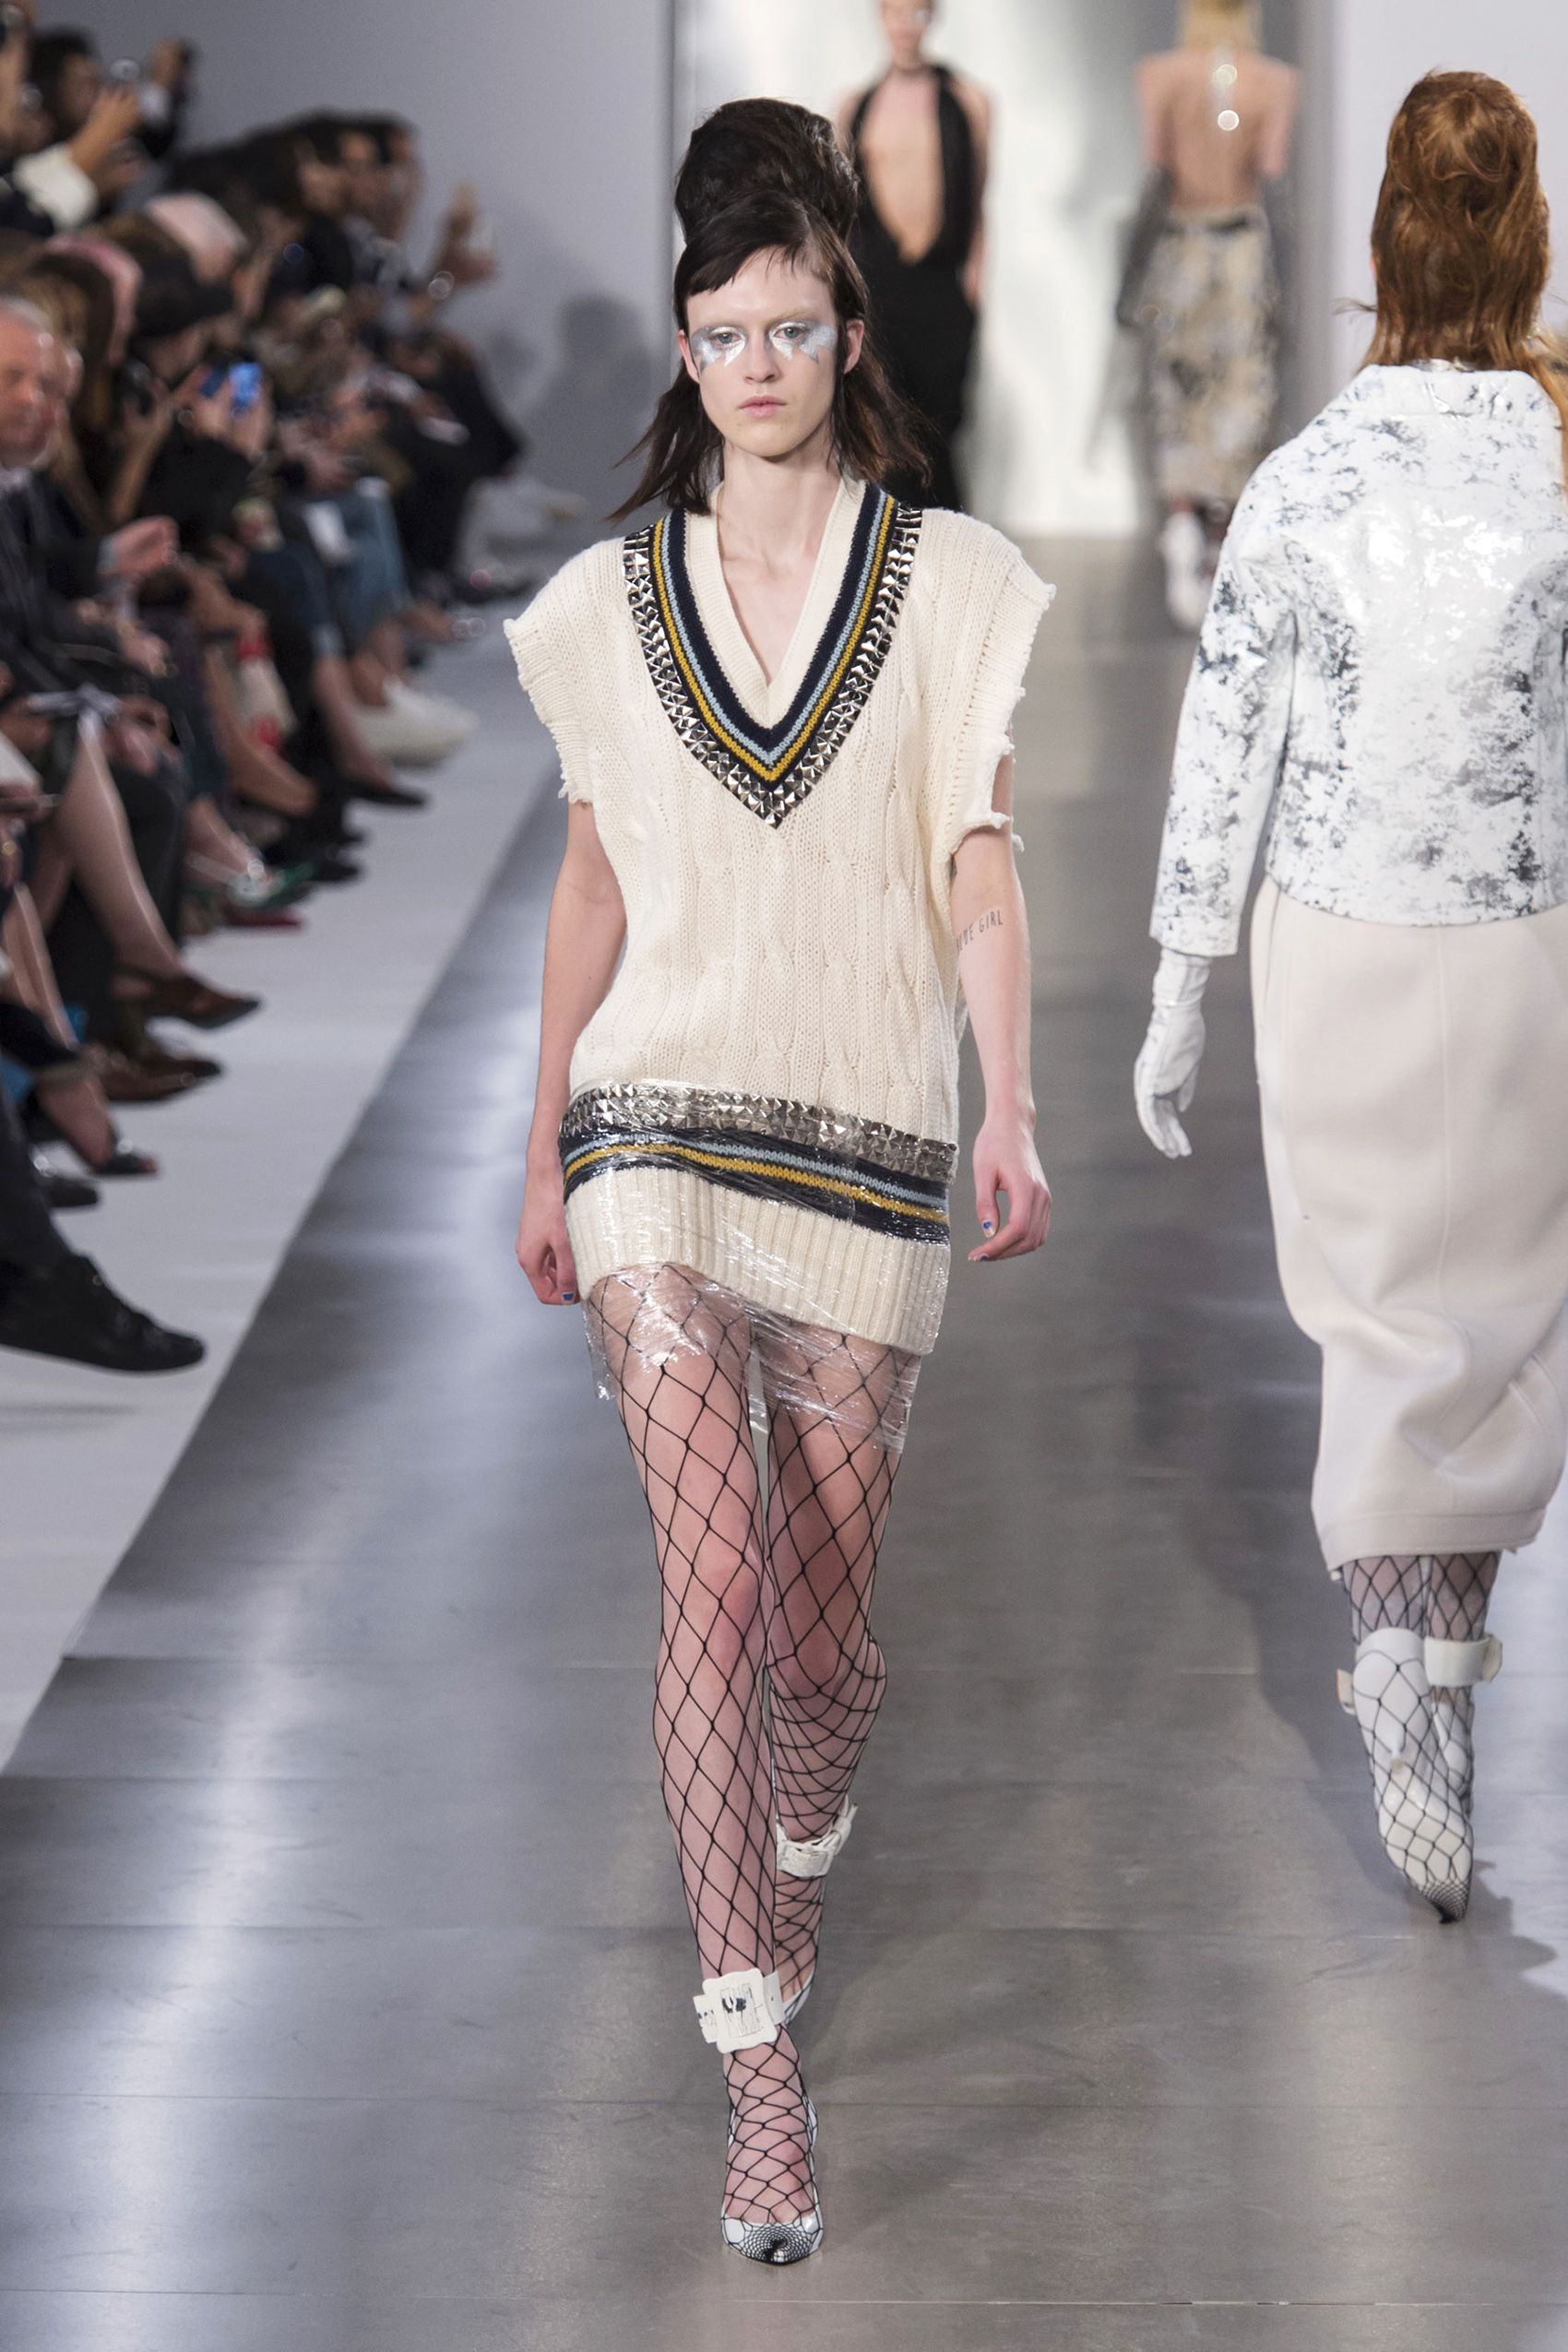 He smartly reworked traditional ideas, like the tennis sweater stripes done in metal grommets or embellishments on skirts and coats that looked like crystal eyelashes.    - HarpersBAZAAR.com